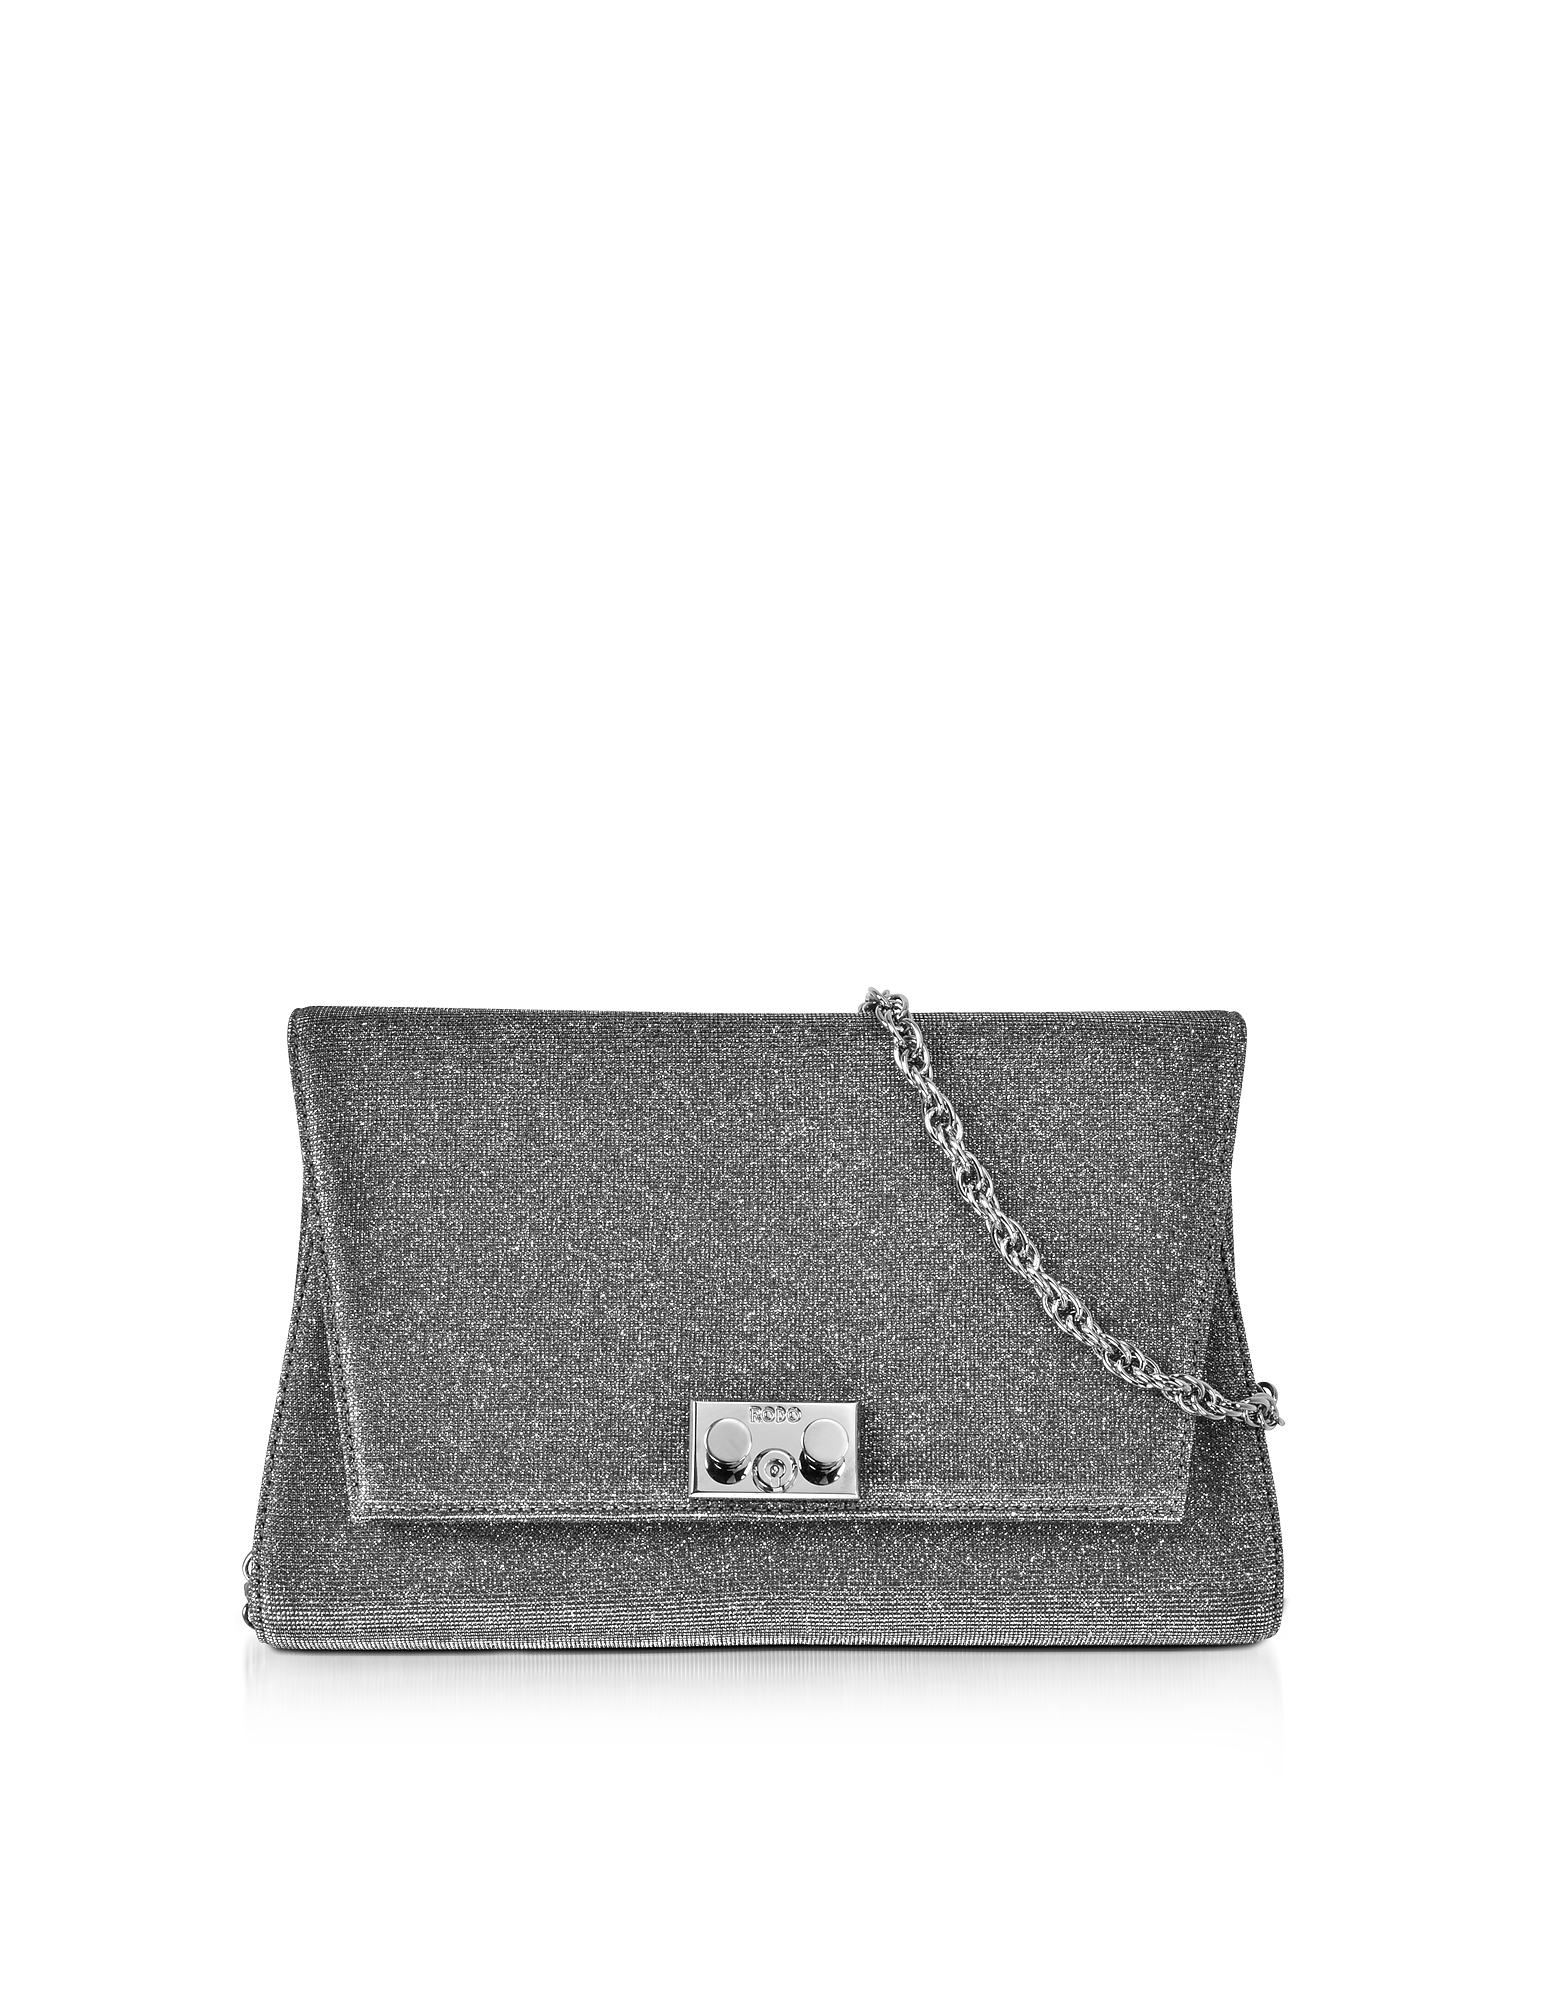 Rodo Handbags, Silver and Black Lurex Crossbody Clutch